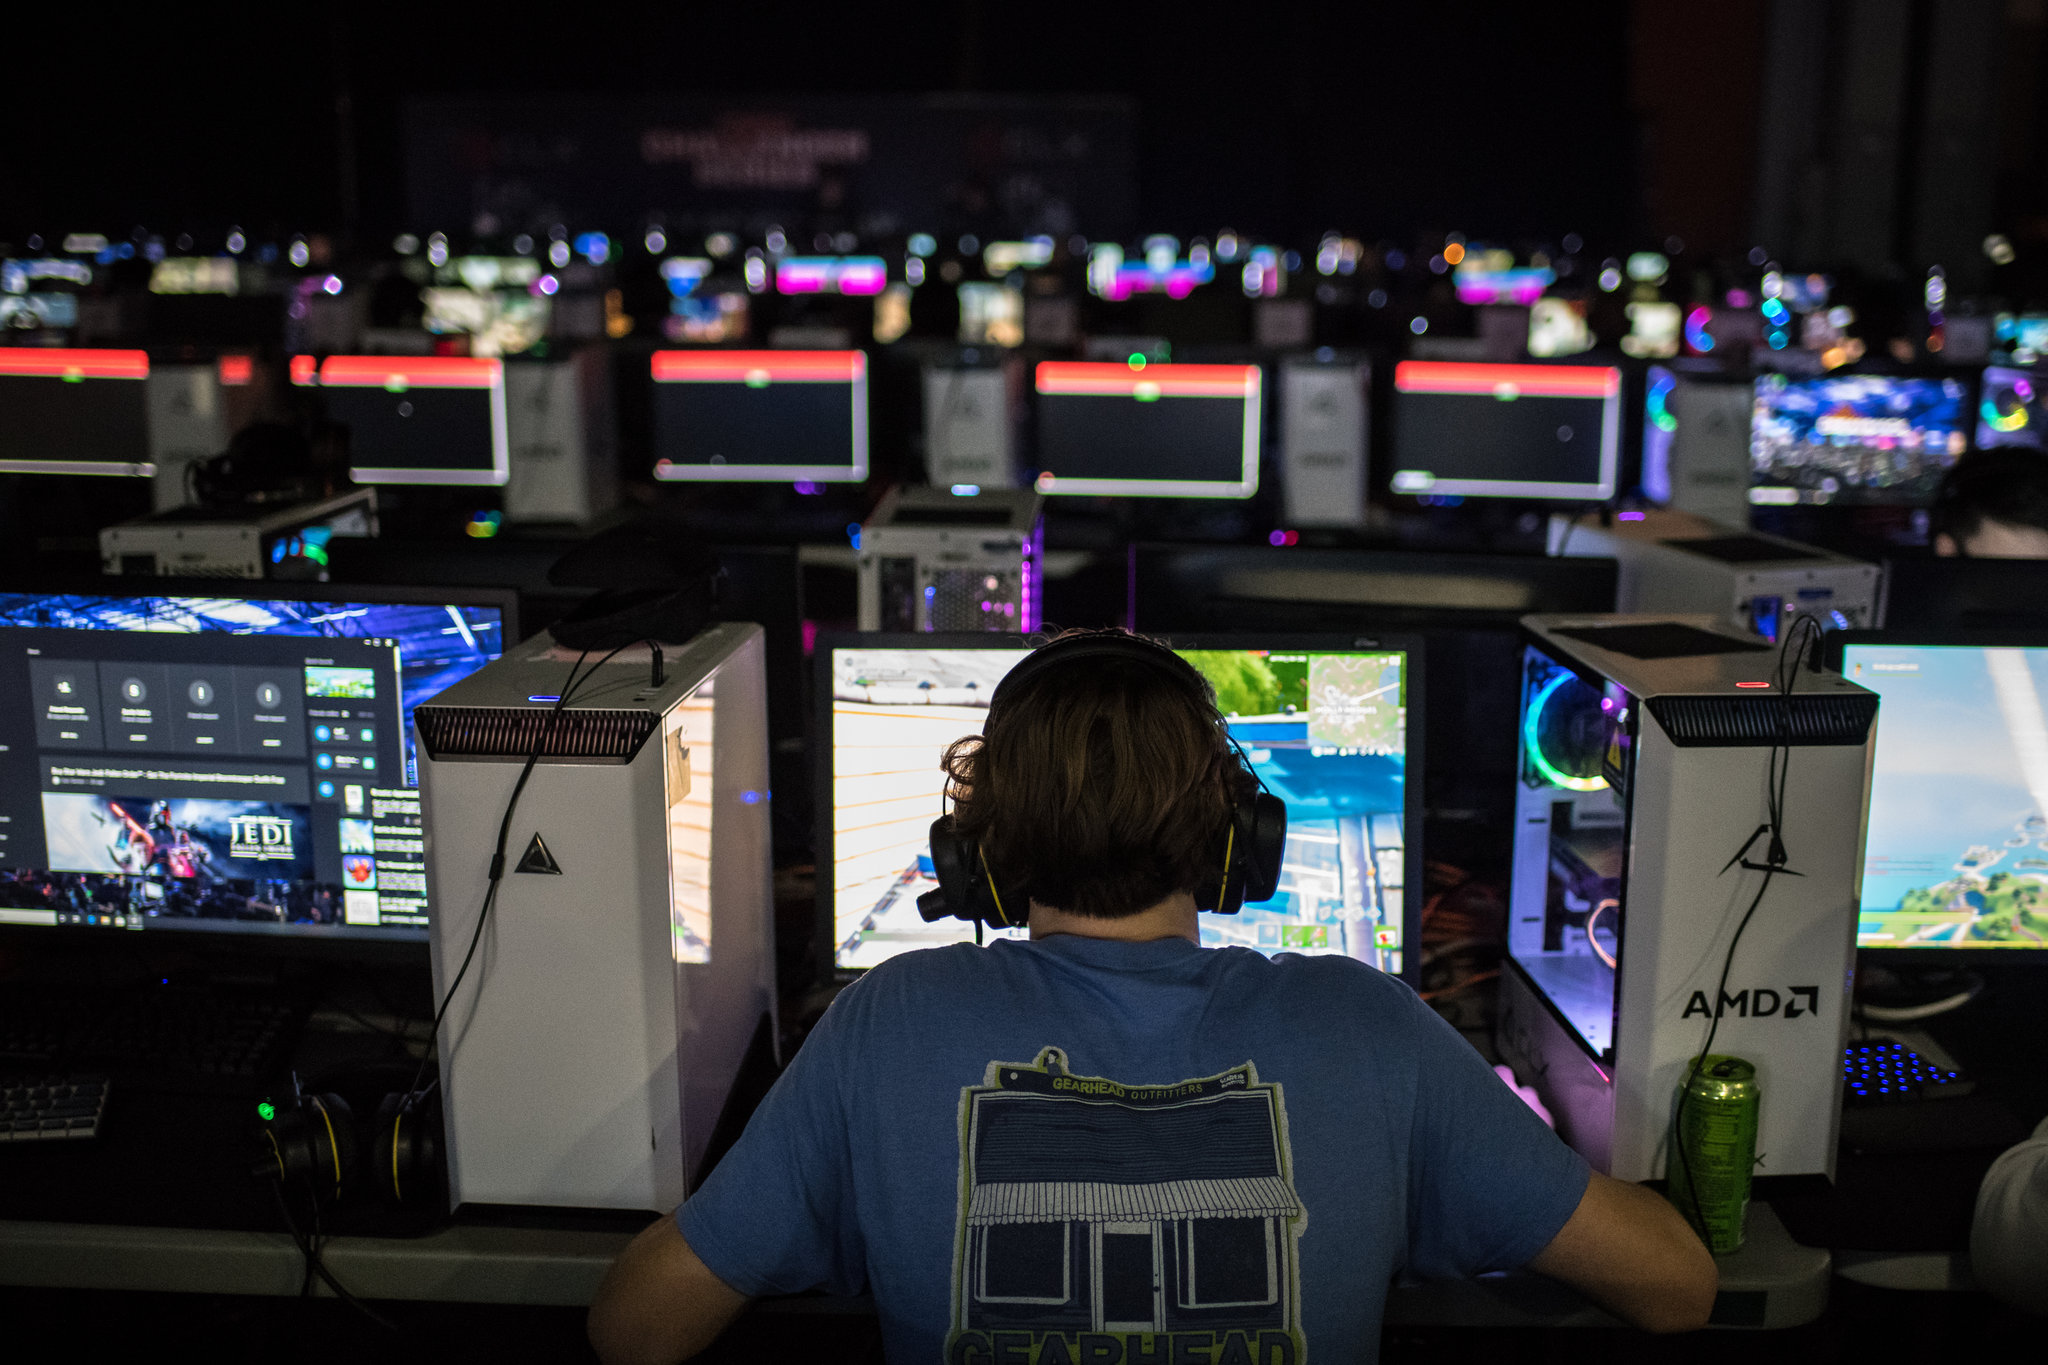 Video games, online chats 'hunting grounds' for sexual predators